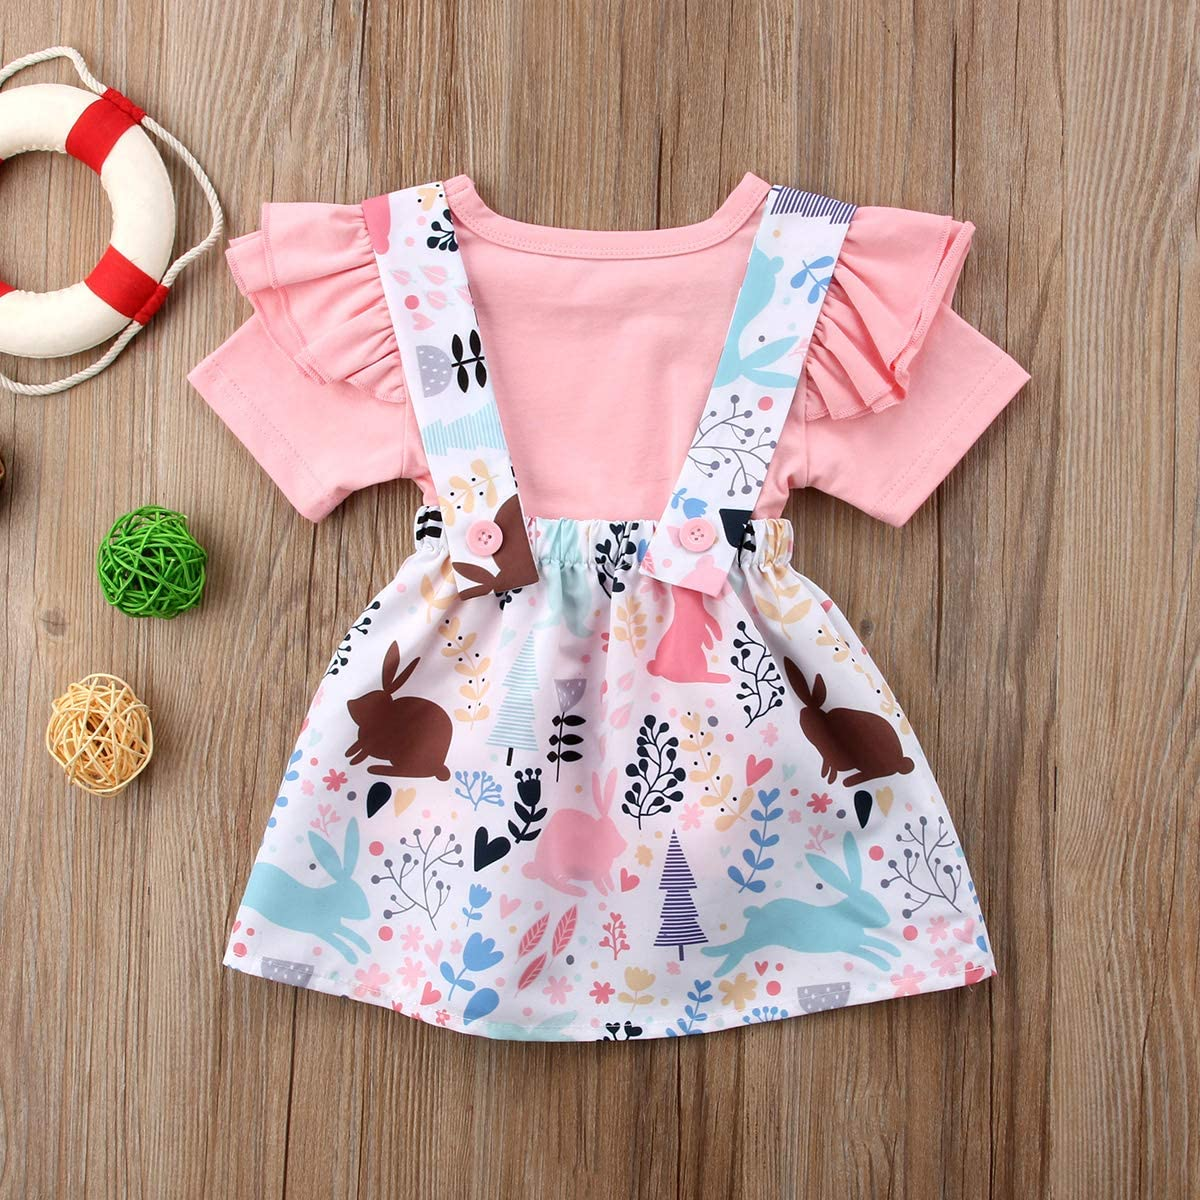 AnneBella Infant Girl Clothes 2Pcs Bunny Princess Mini Dress+T-Shirt Party Dress Tulle Skirt Summer Dresses